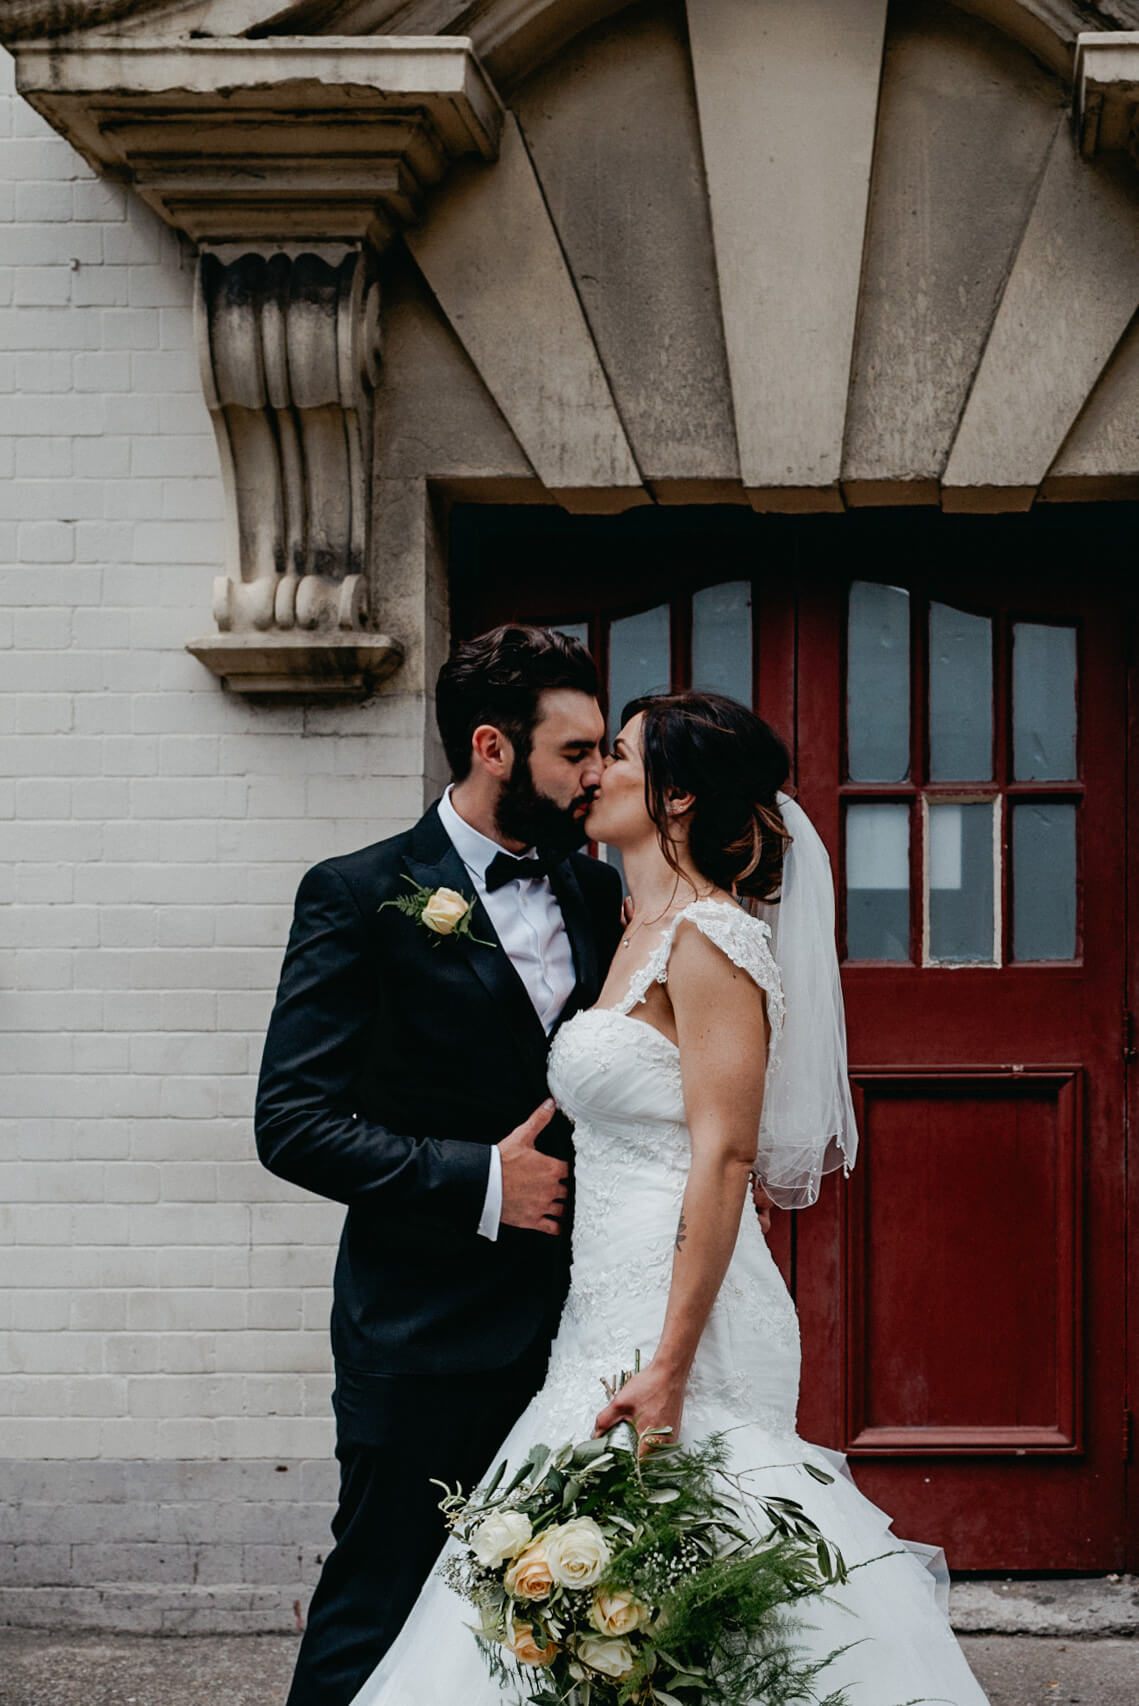 bride and groom kiss in front of red door in sity